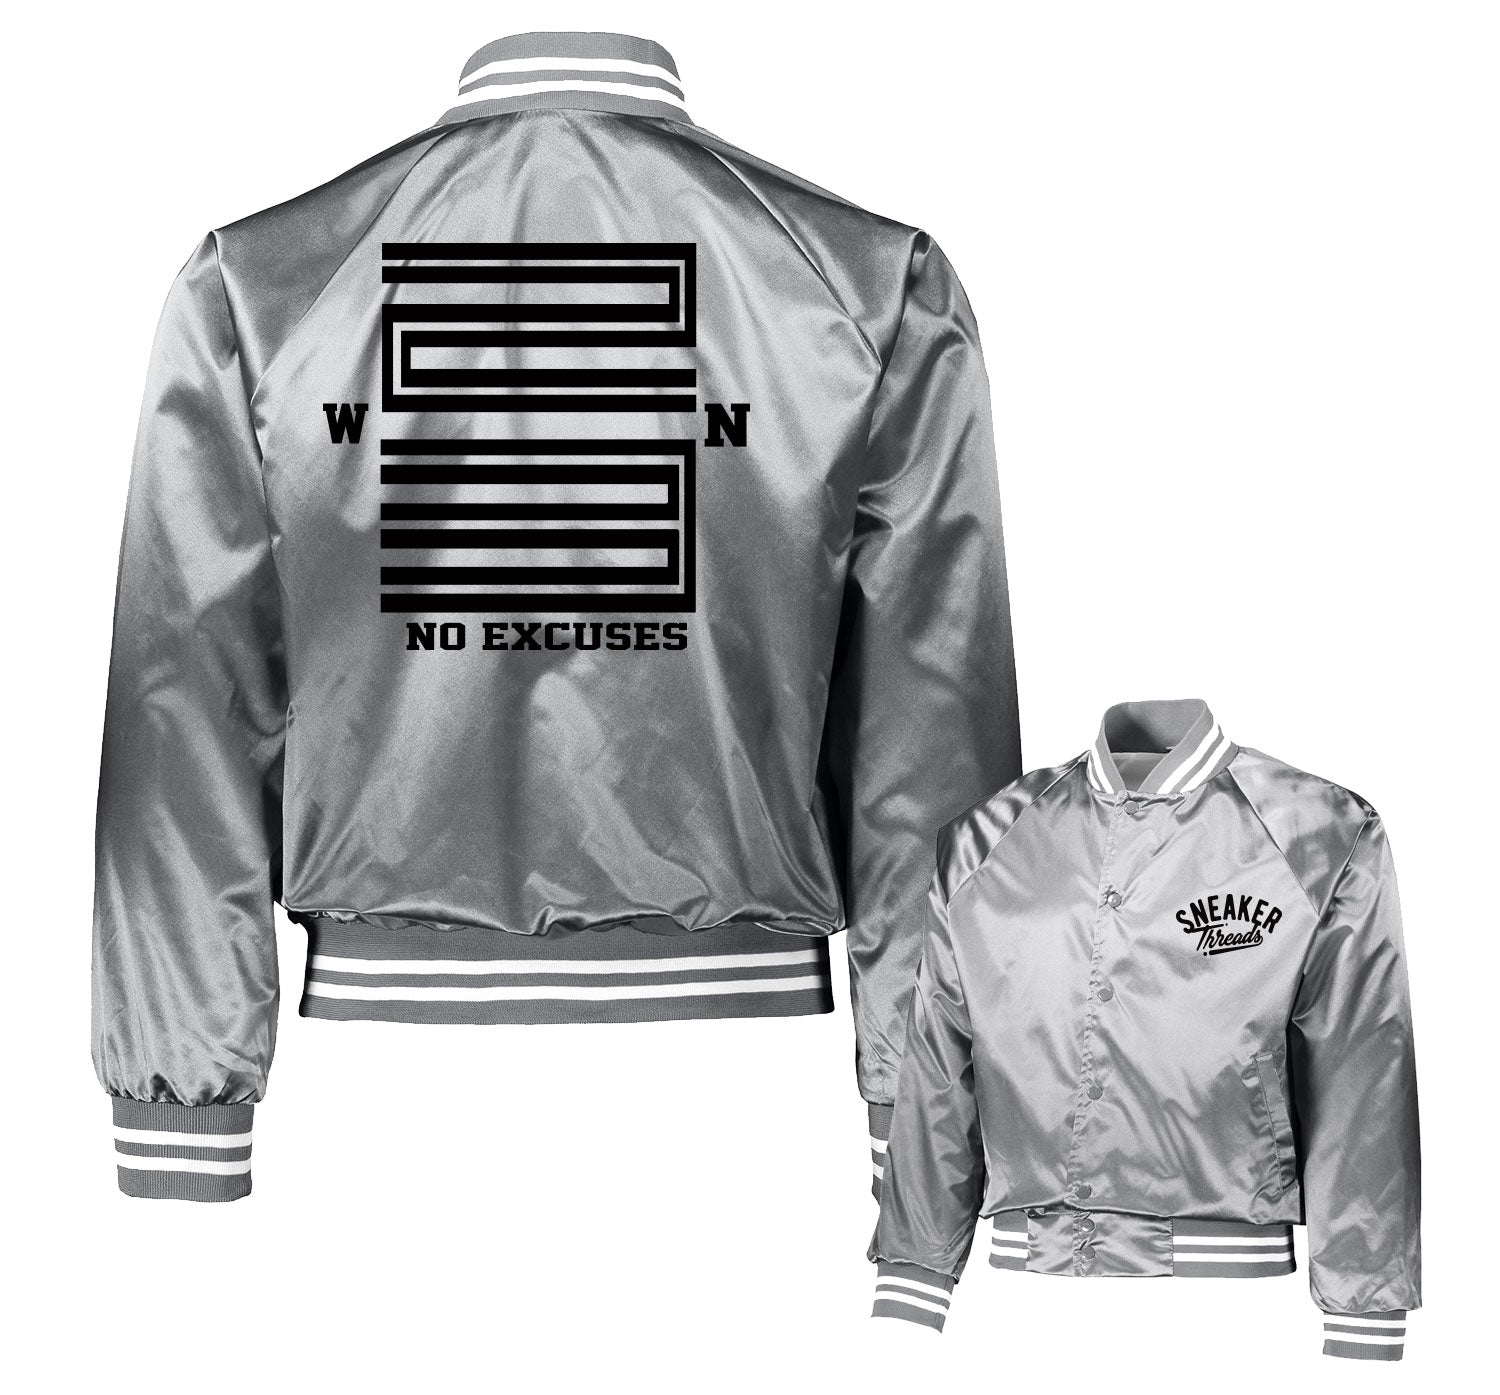 Jordan 11 Metallic Silver WIN Satin Jacket